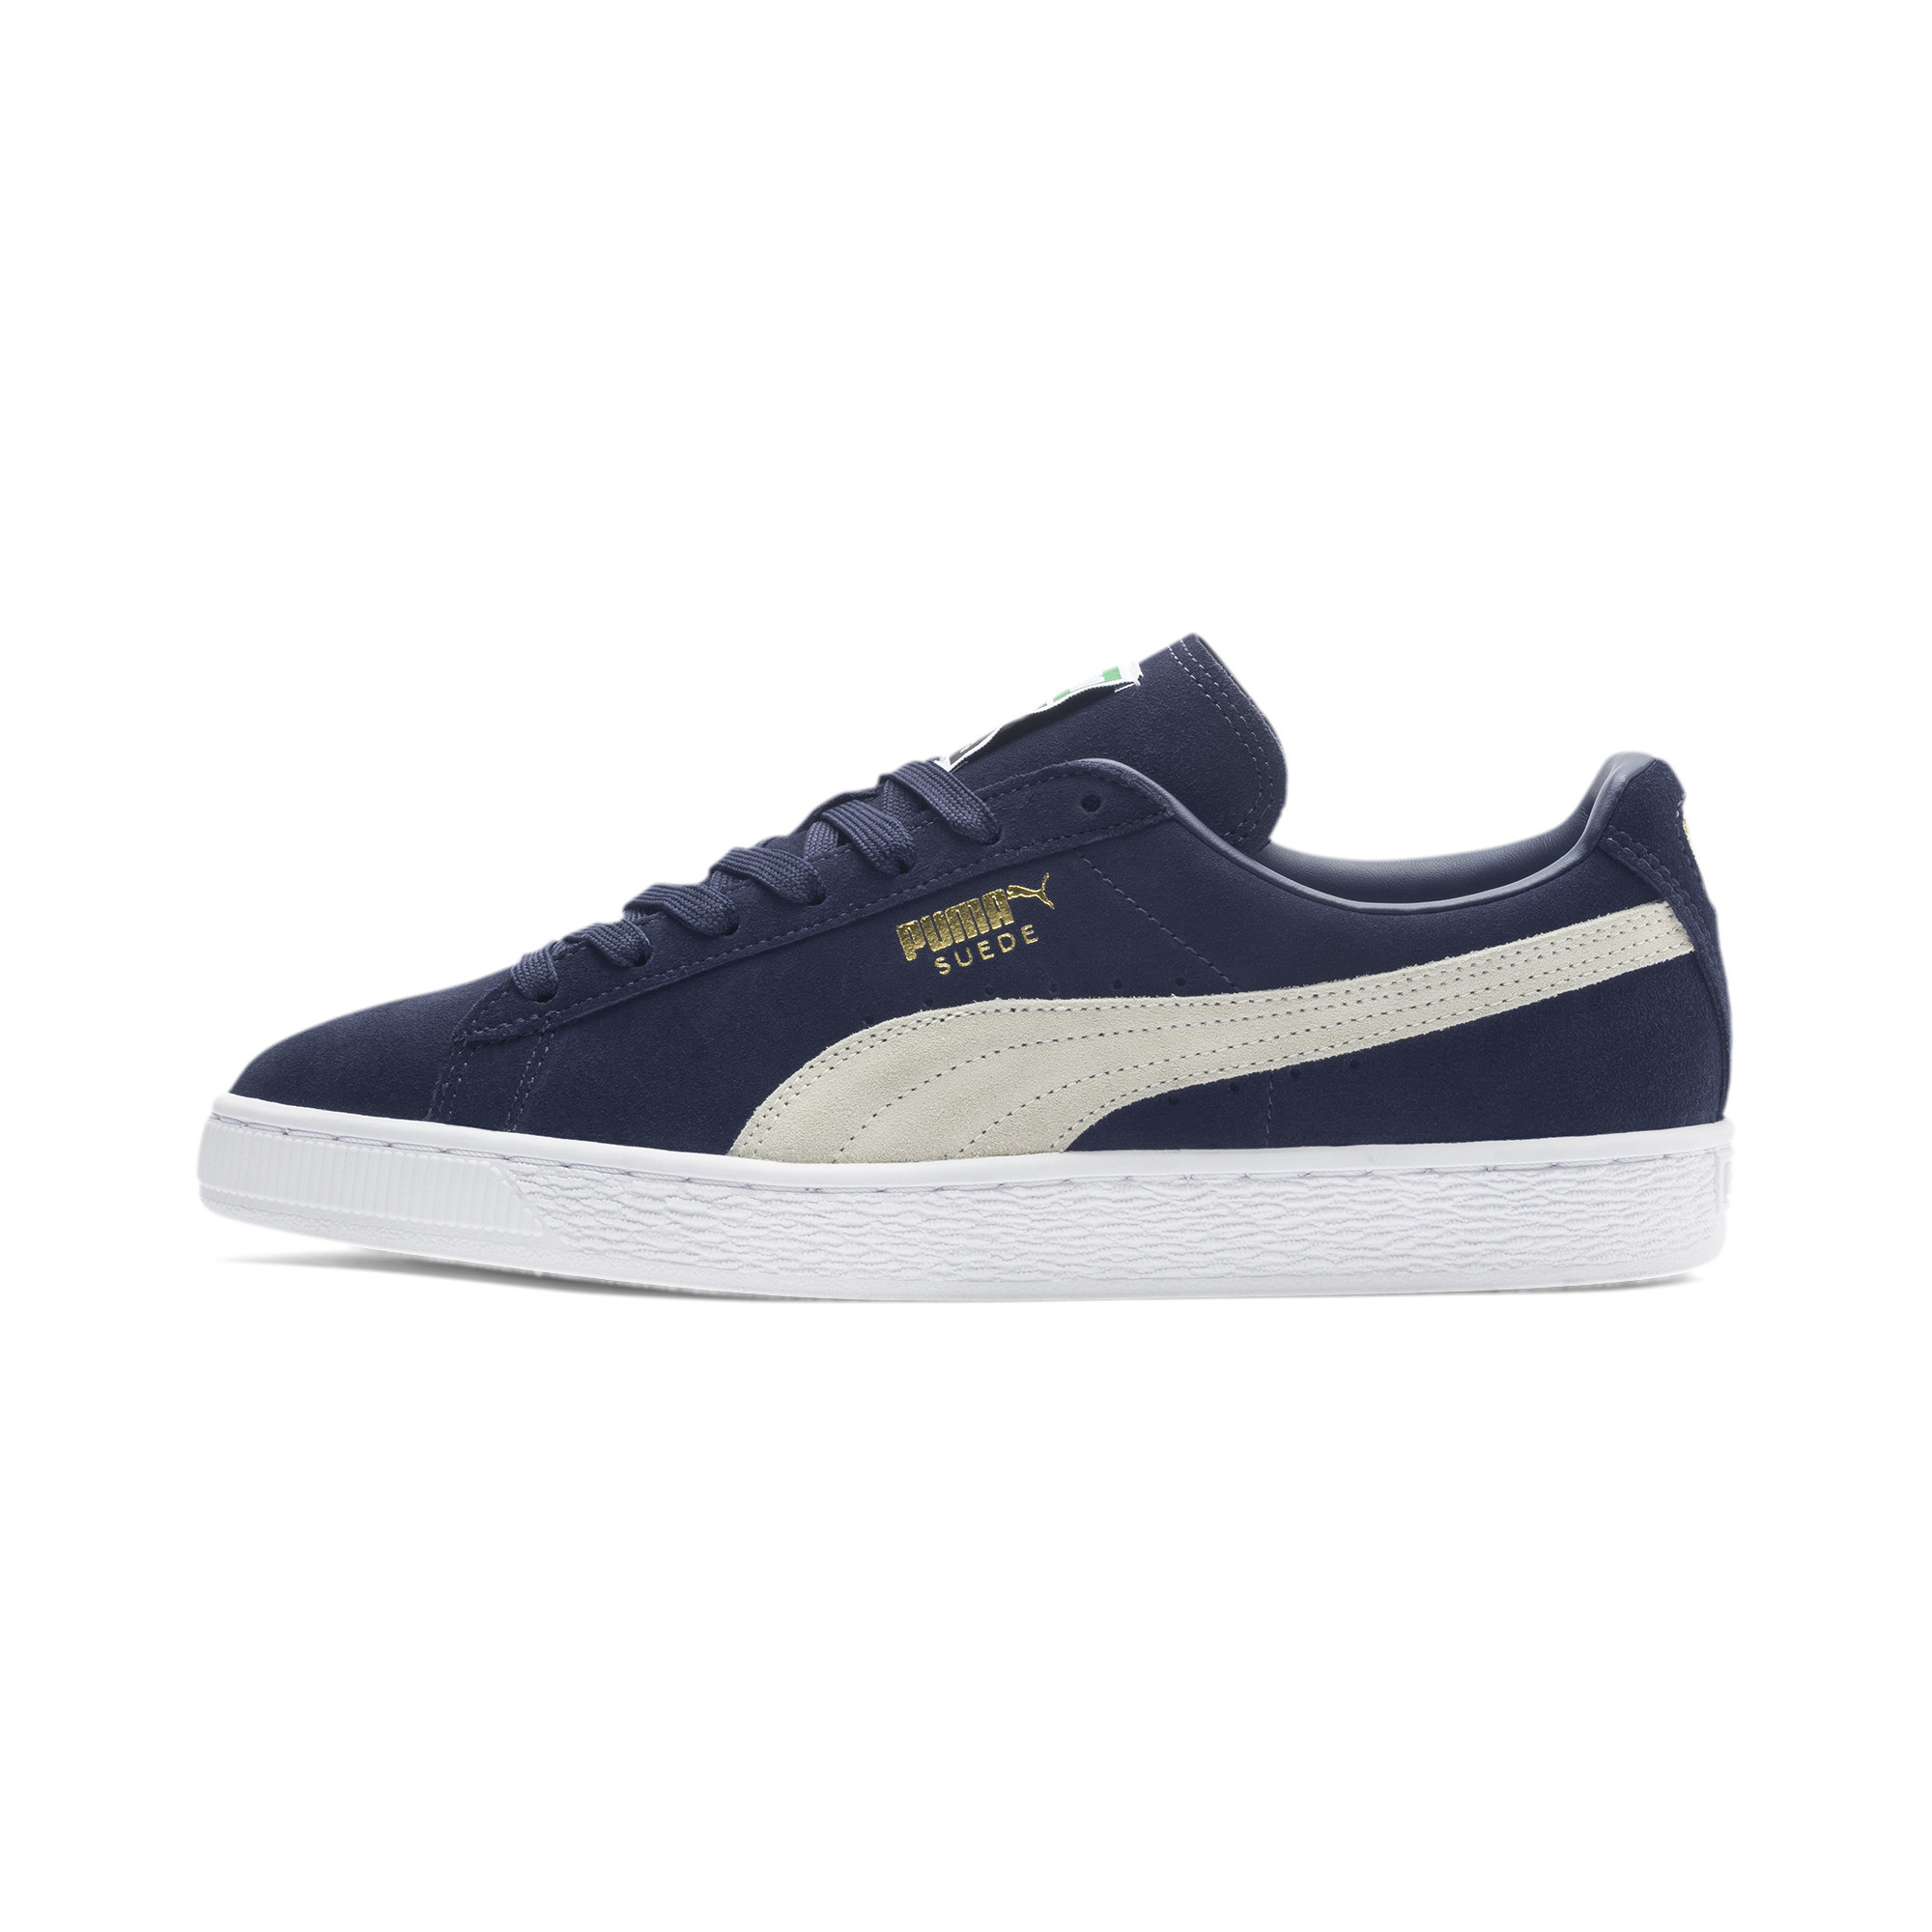 PUMA-Men-039-s-Suede-Classic-Sneakers thumbnail 4